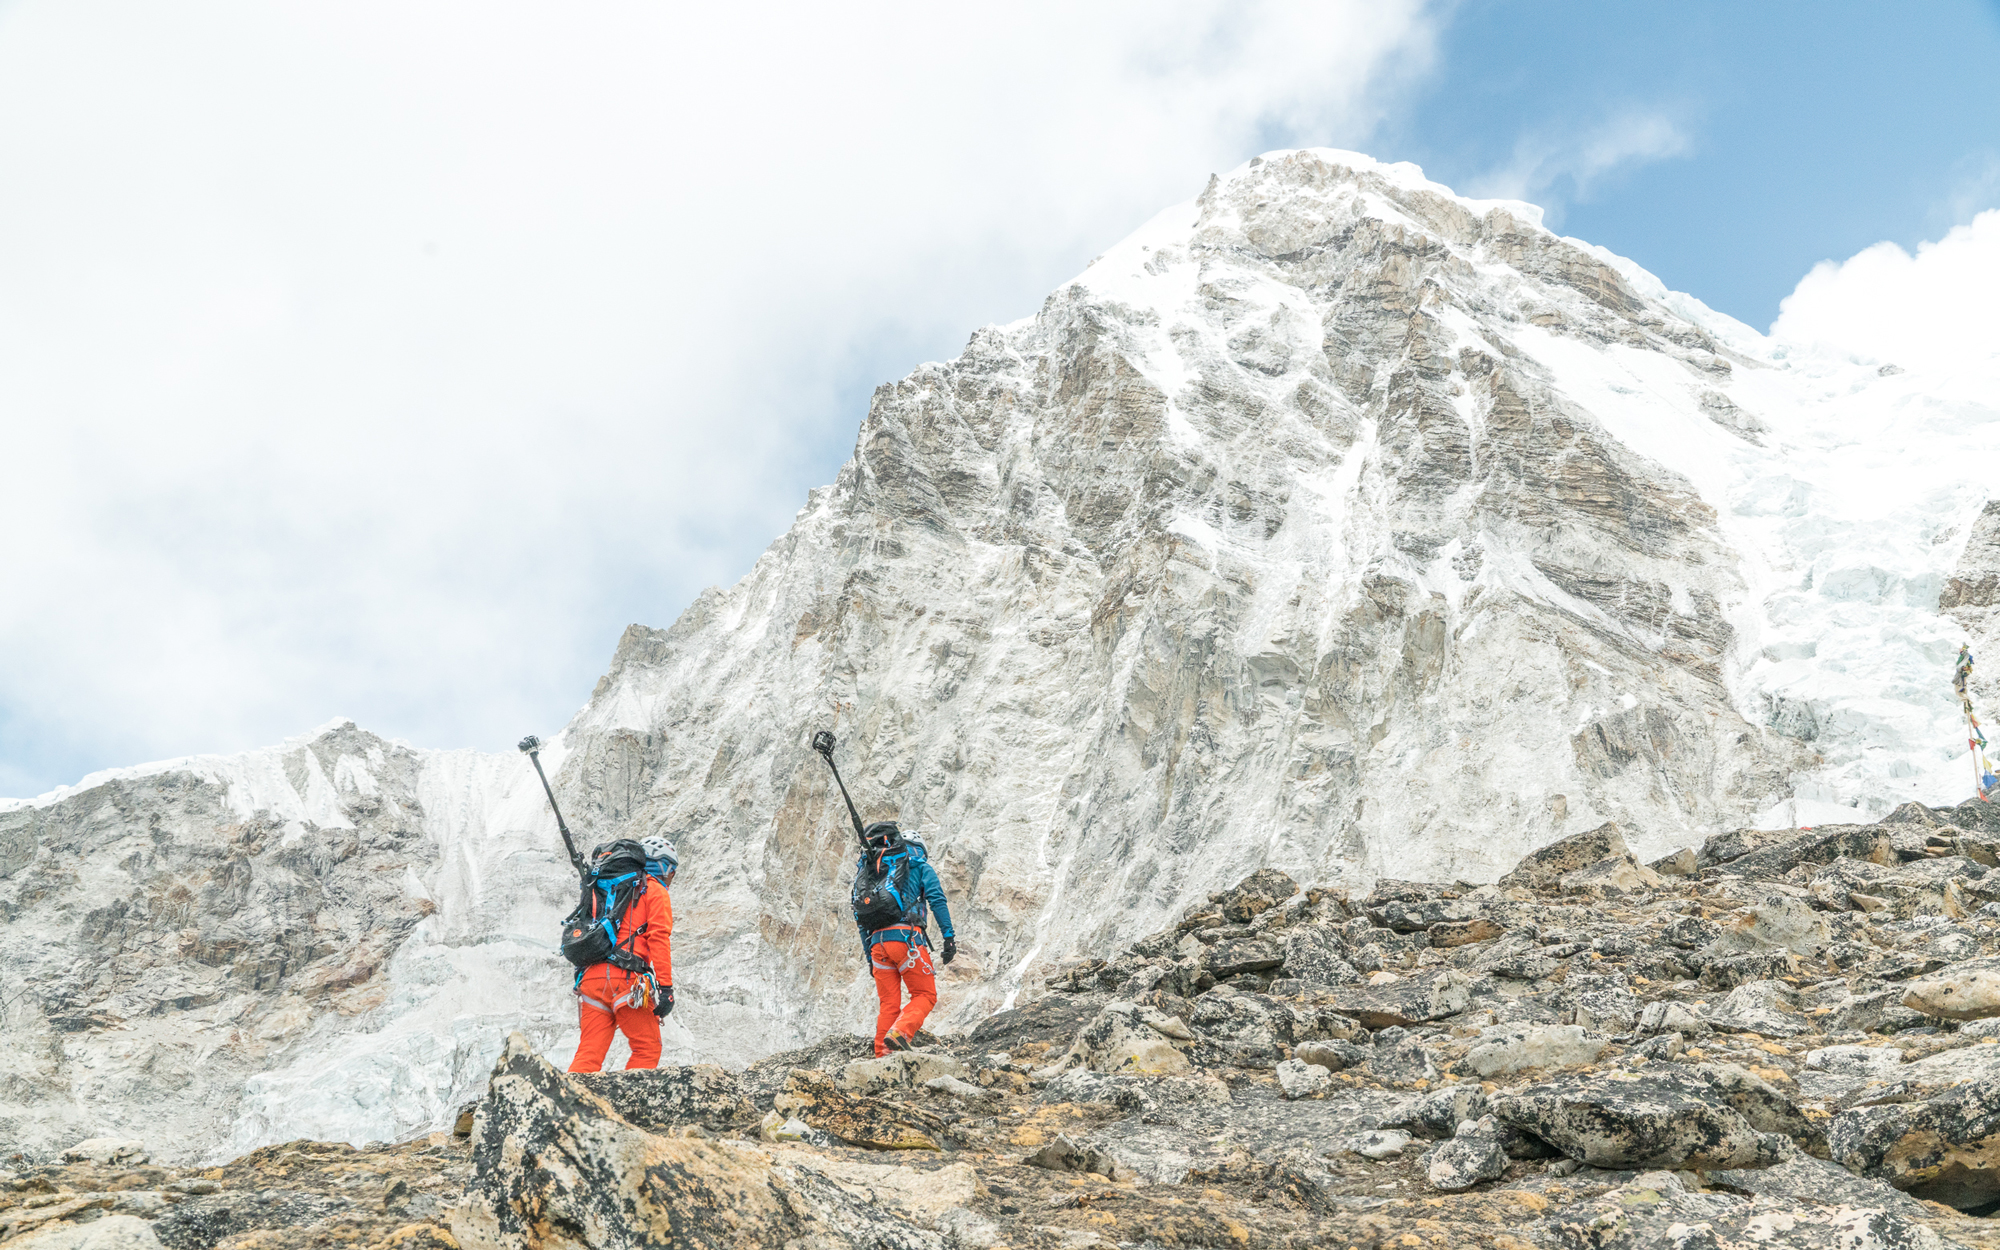 360 Degree Video Mount Everest| Travel + Leisure